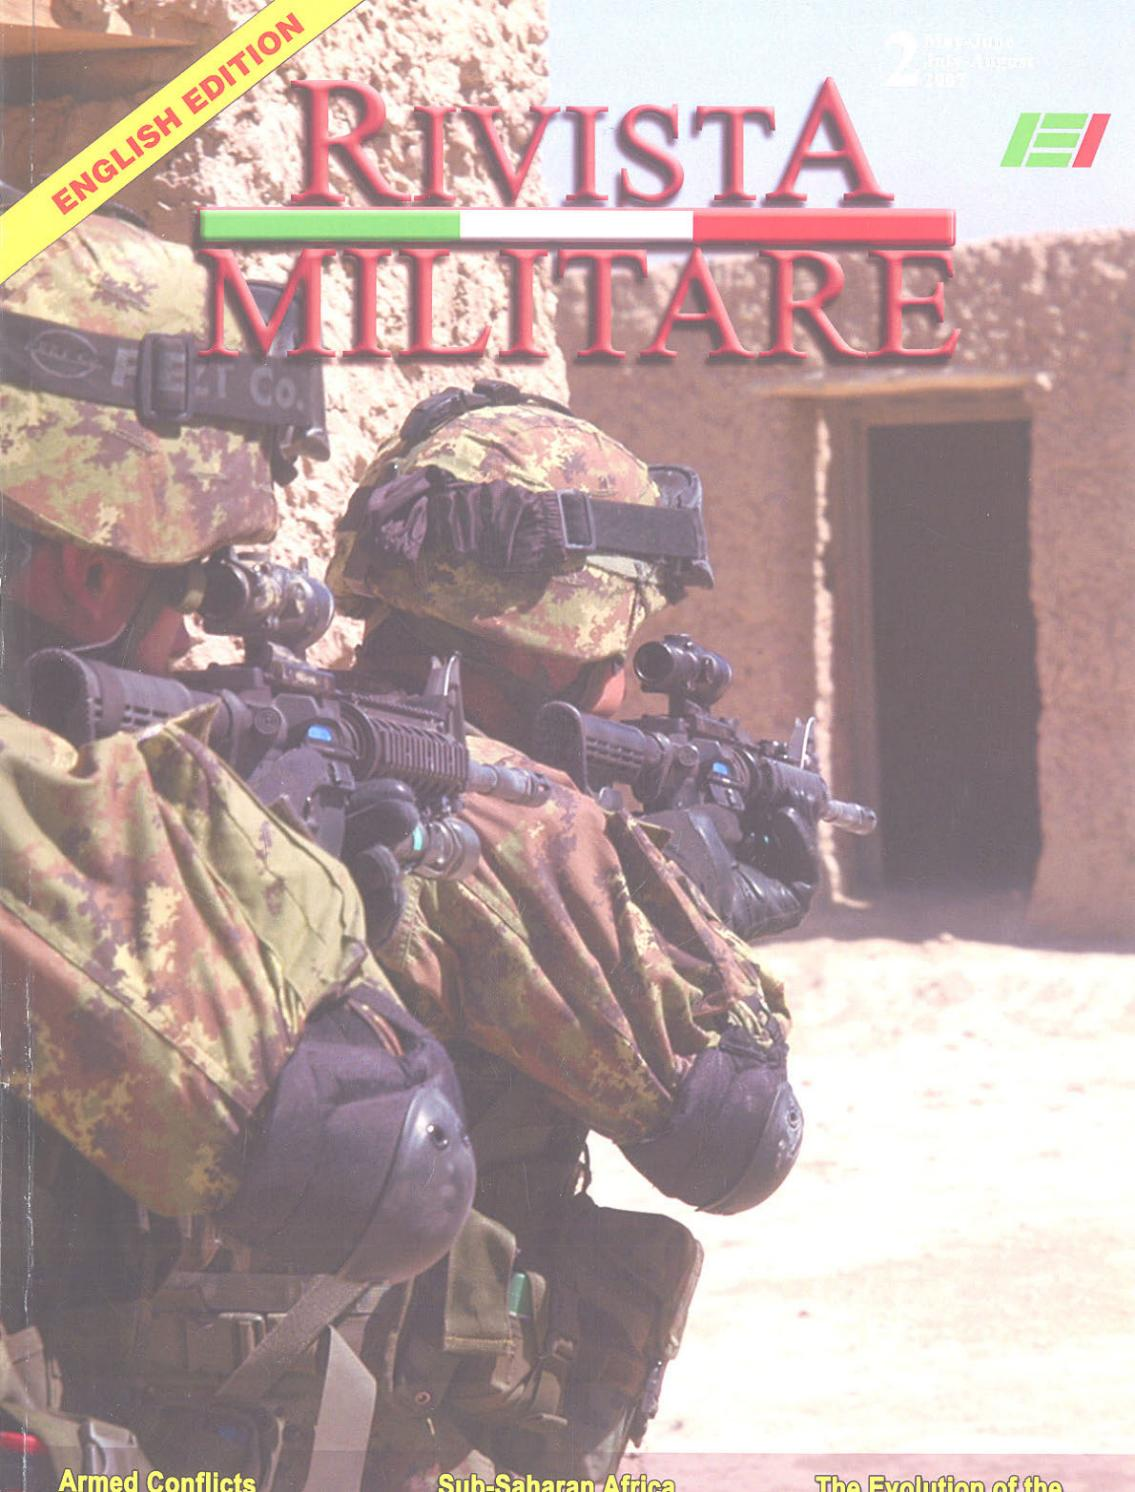 Journal Of Italian Army 2007 N2 Rivista Militare By Biblioteca Tendencies Kaos Im Flying Helmet Abu Tua S Issuu